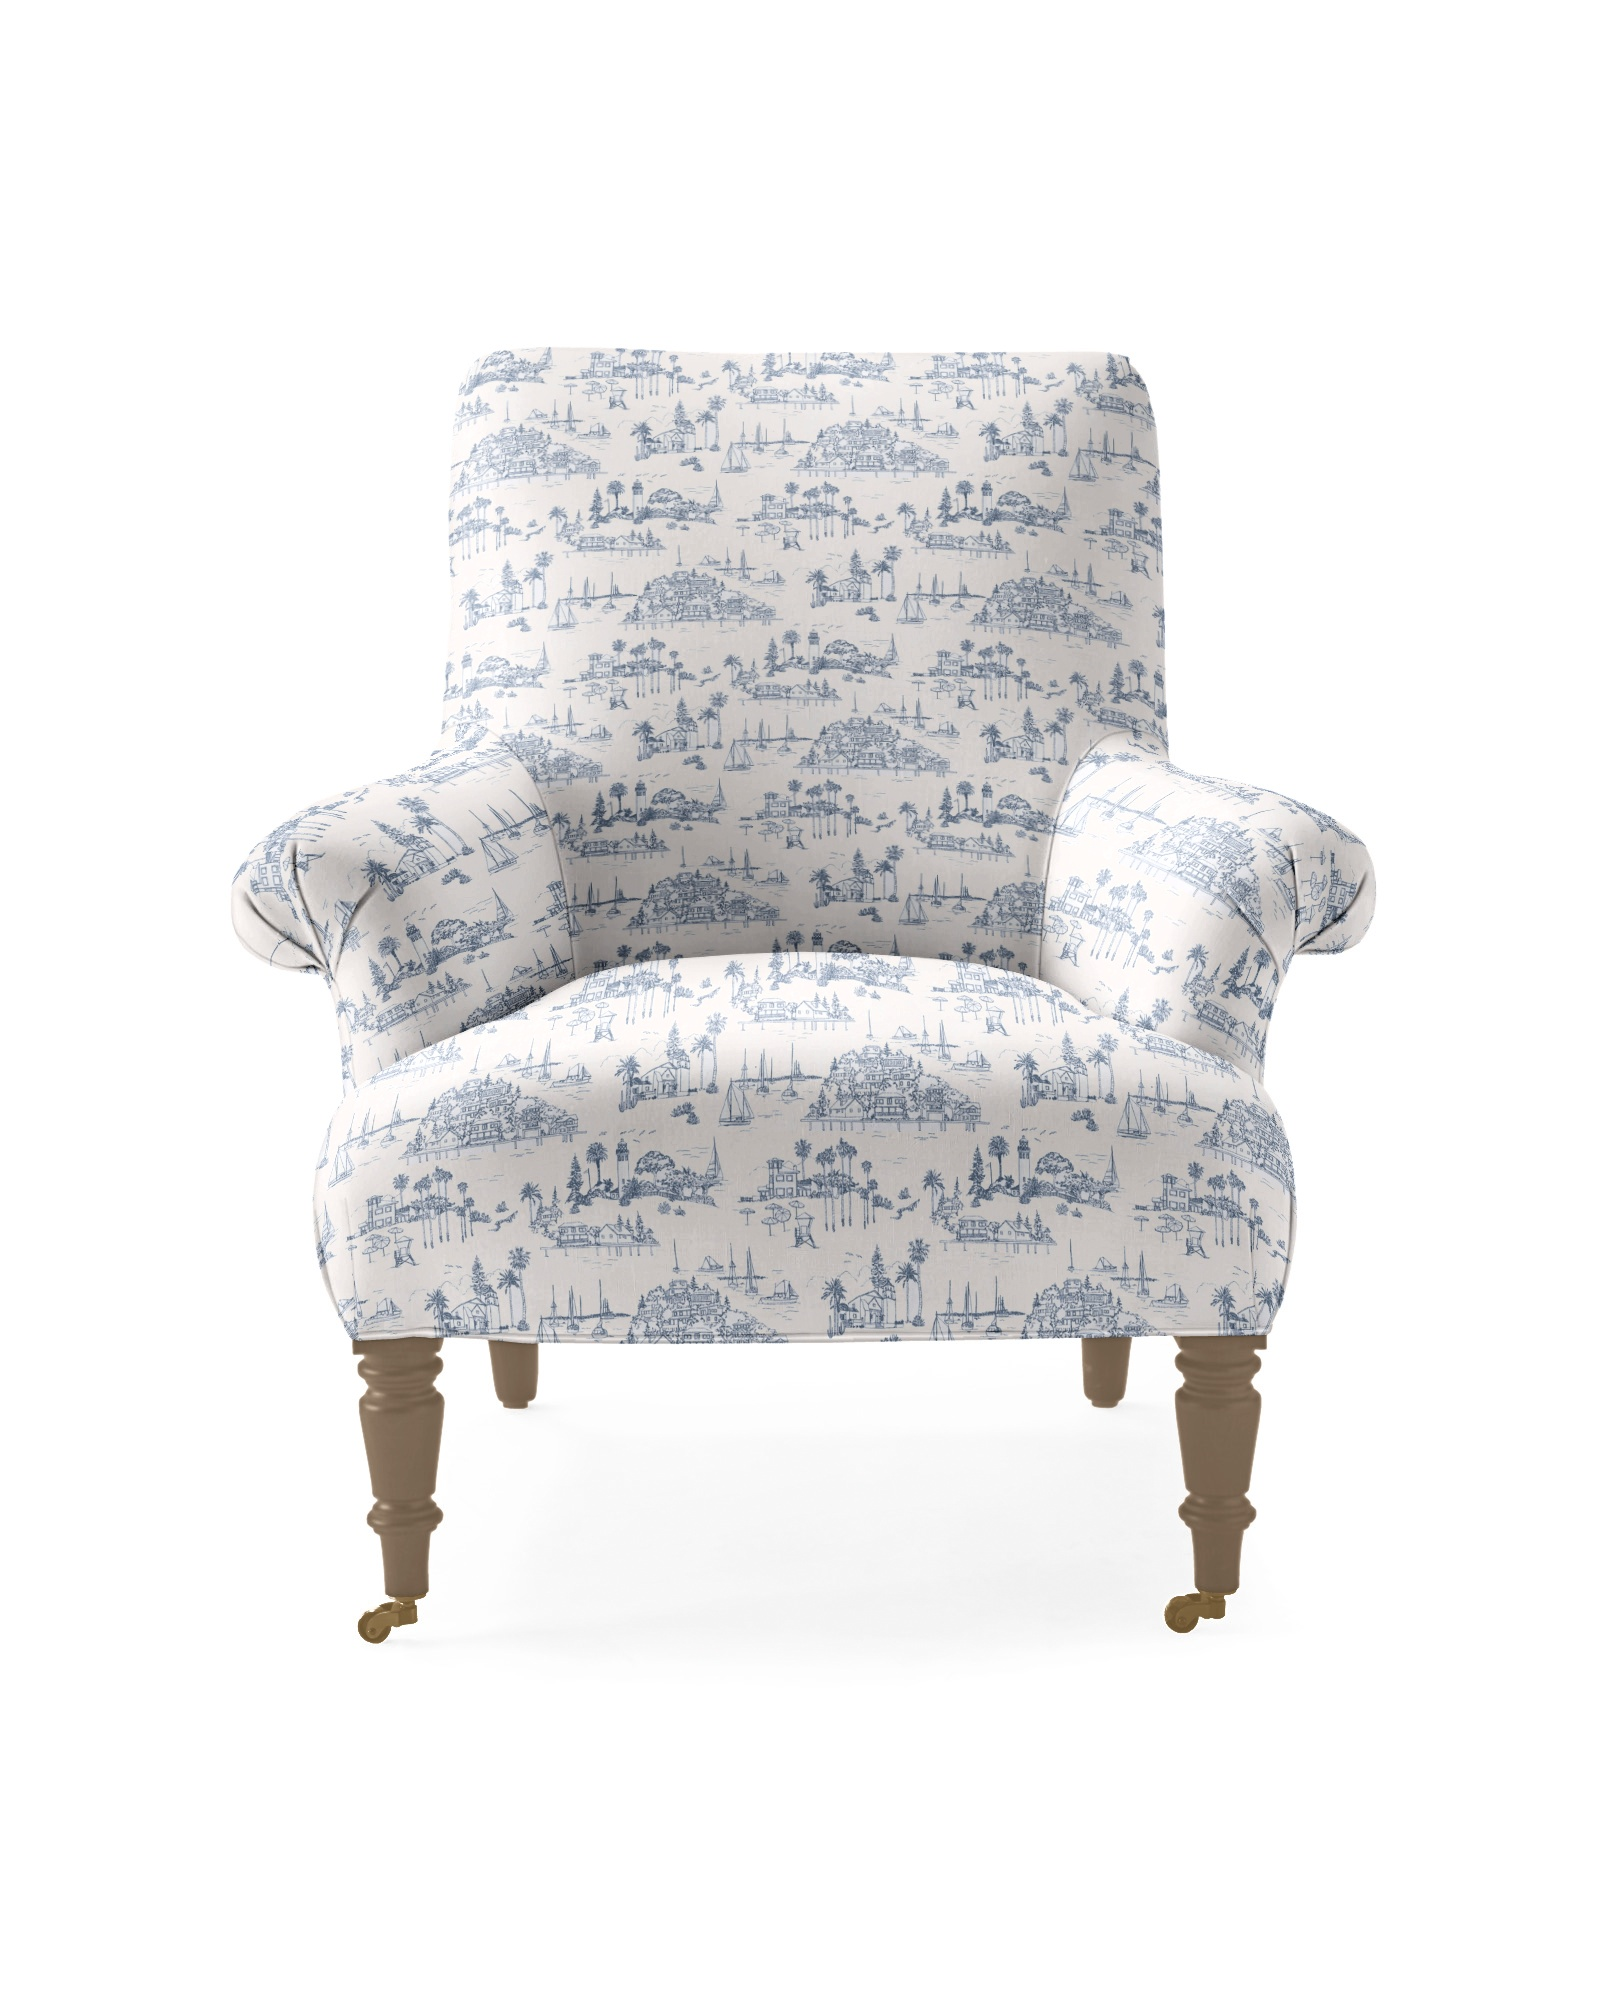 Avignon Chair - Seahaven French Blue Linen,